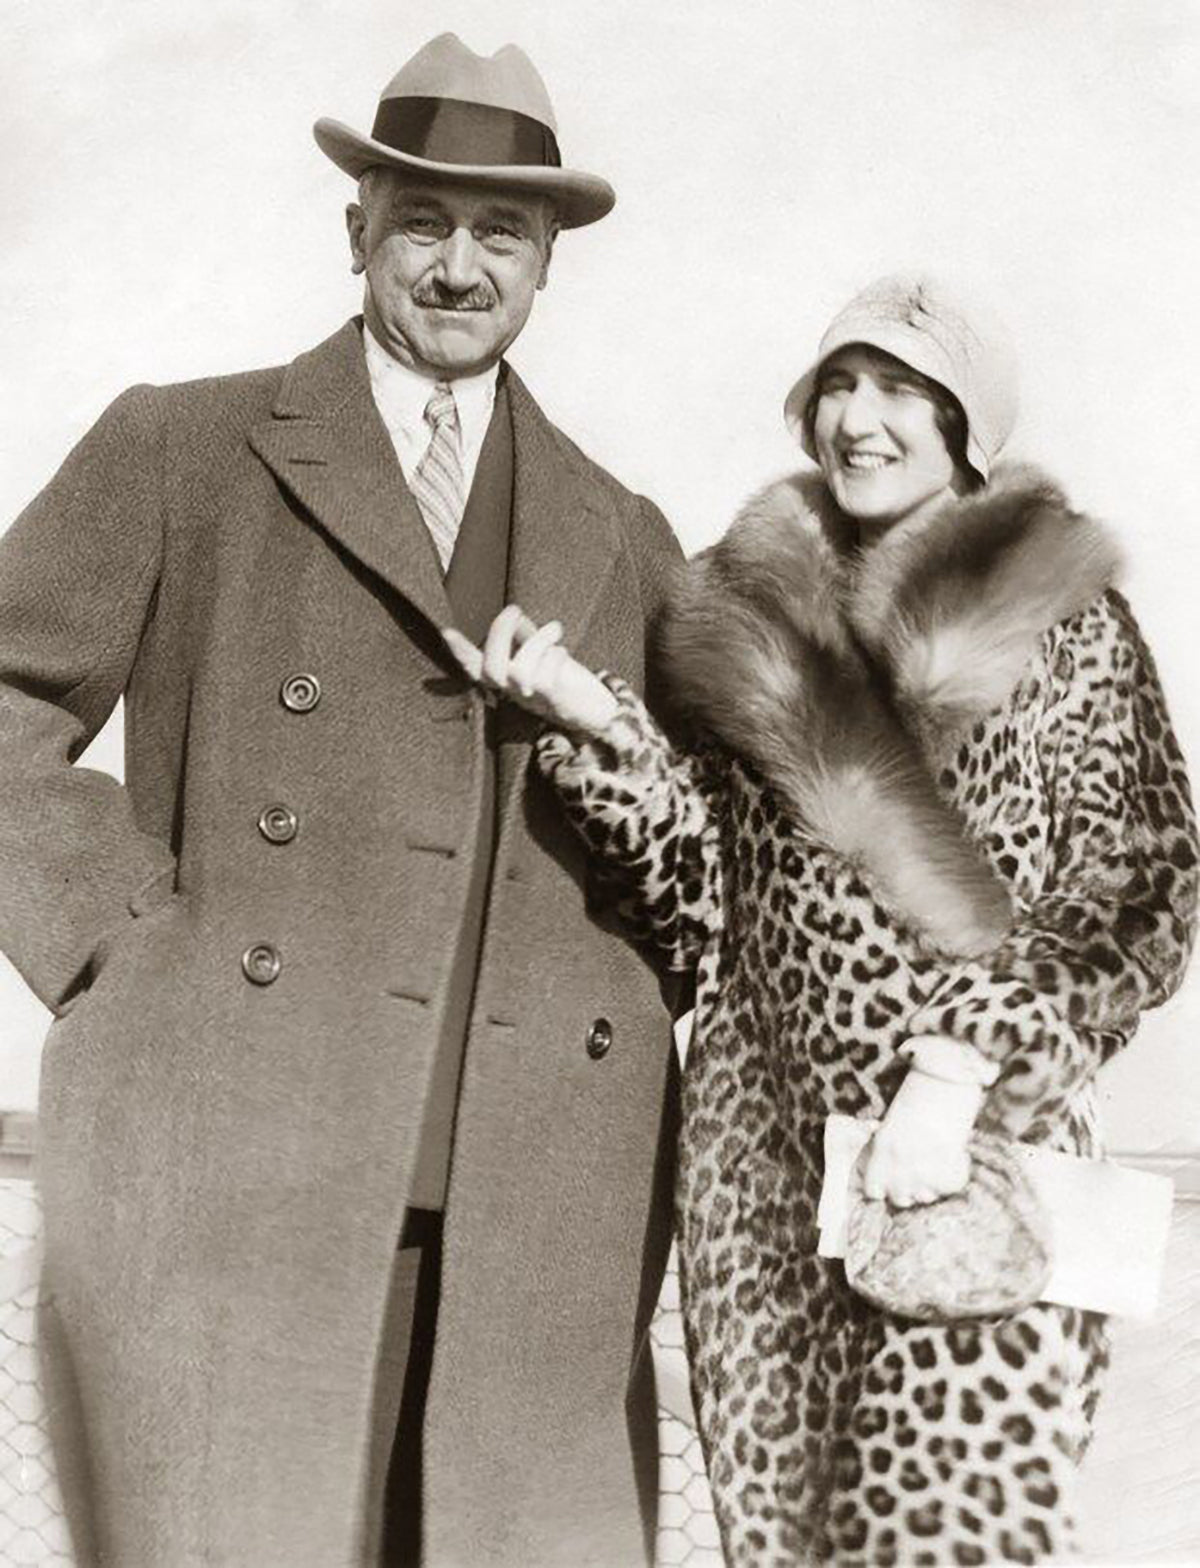 Amadeo Giannini, Amadeo Giannini daughter, Claire Giannini, Amadeo and Claire Giannini